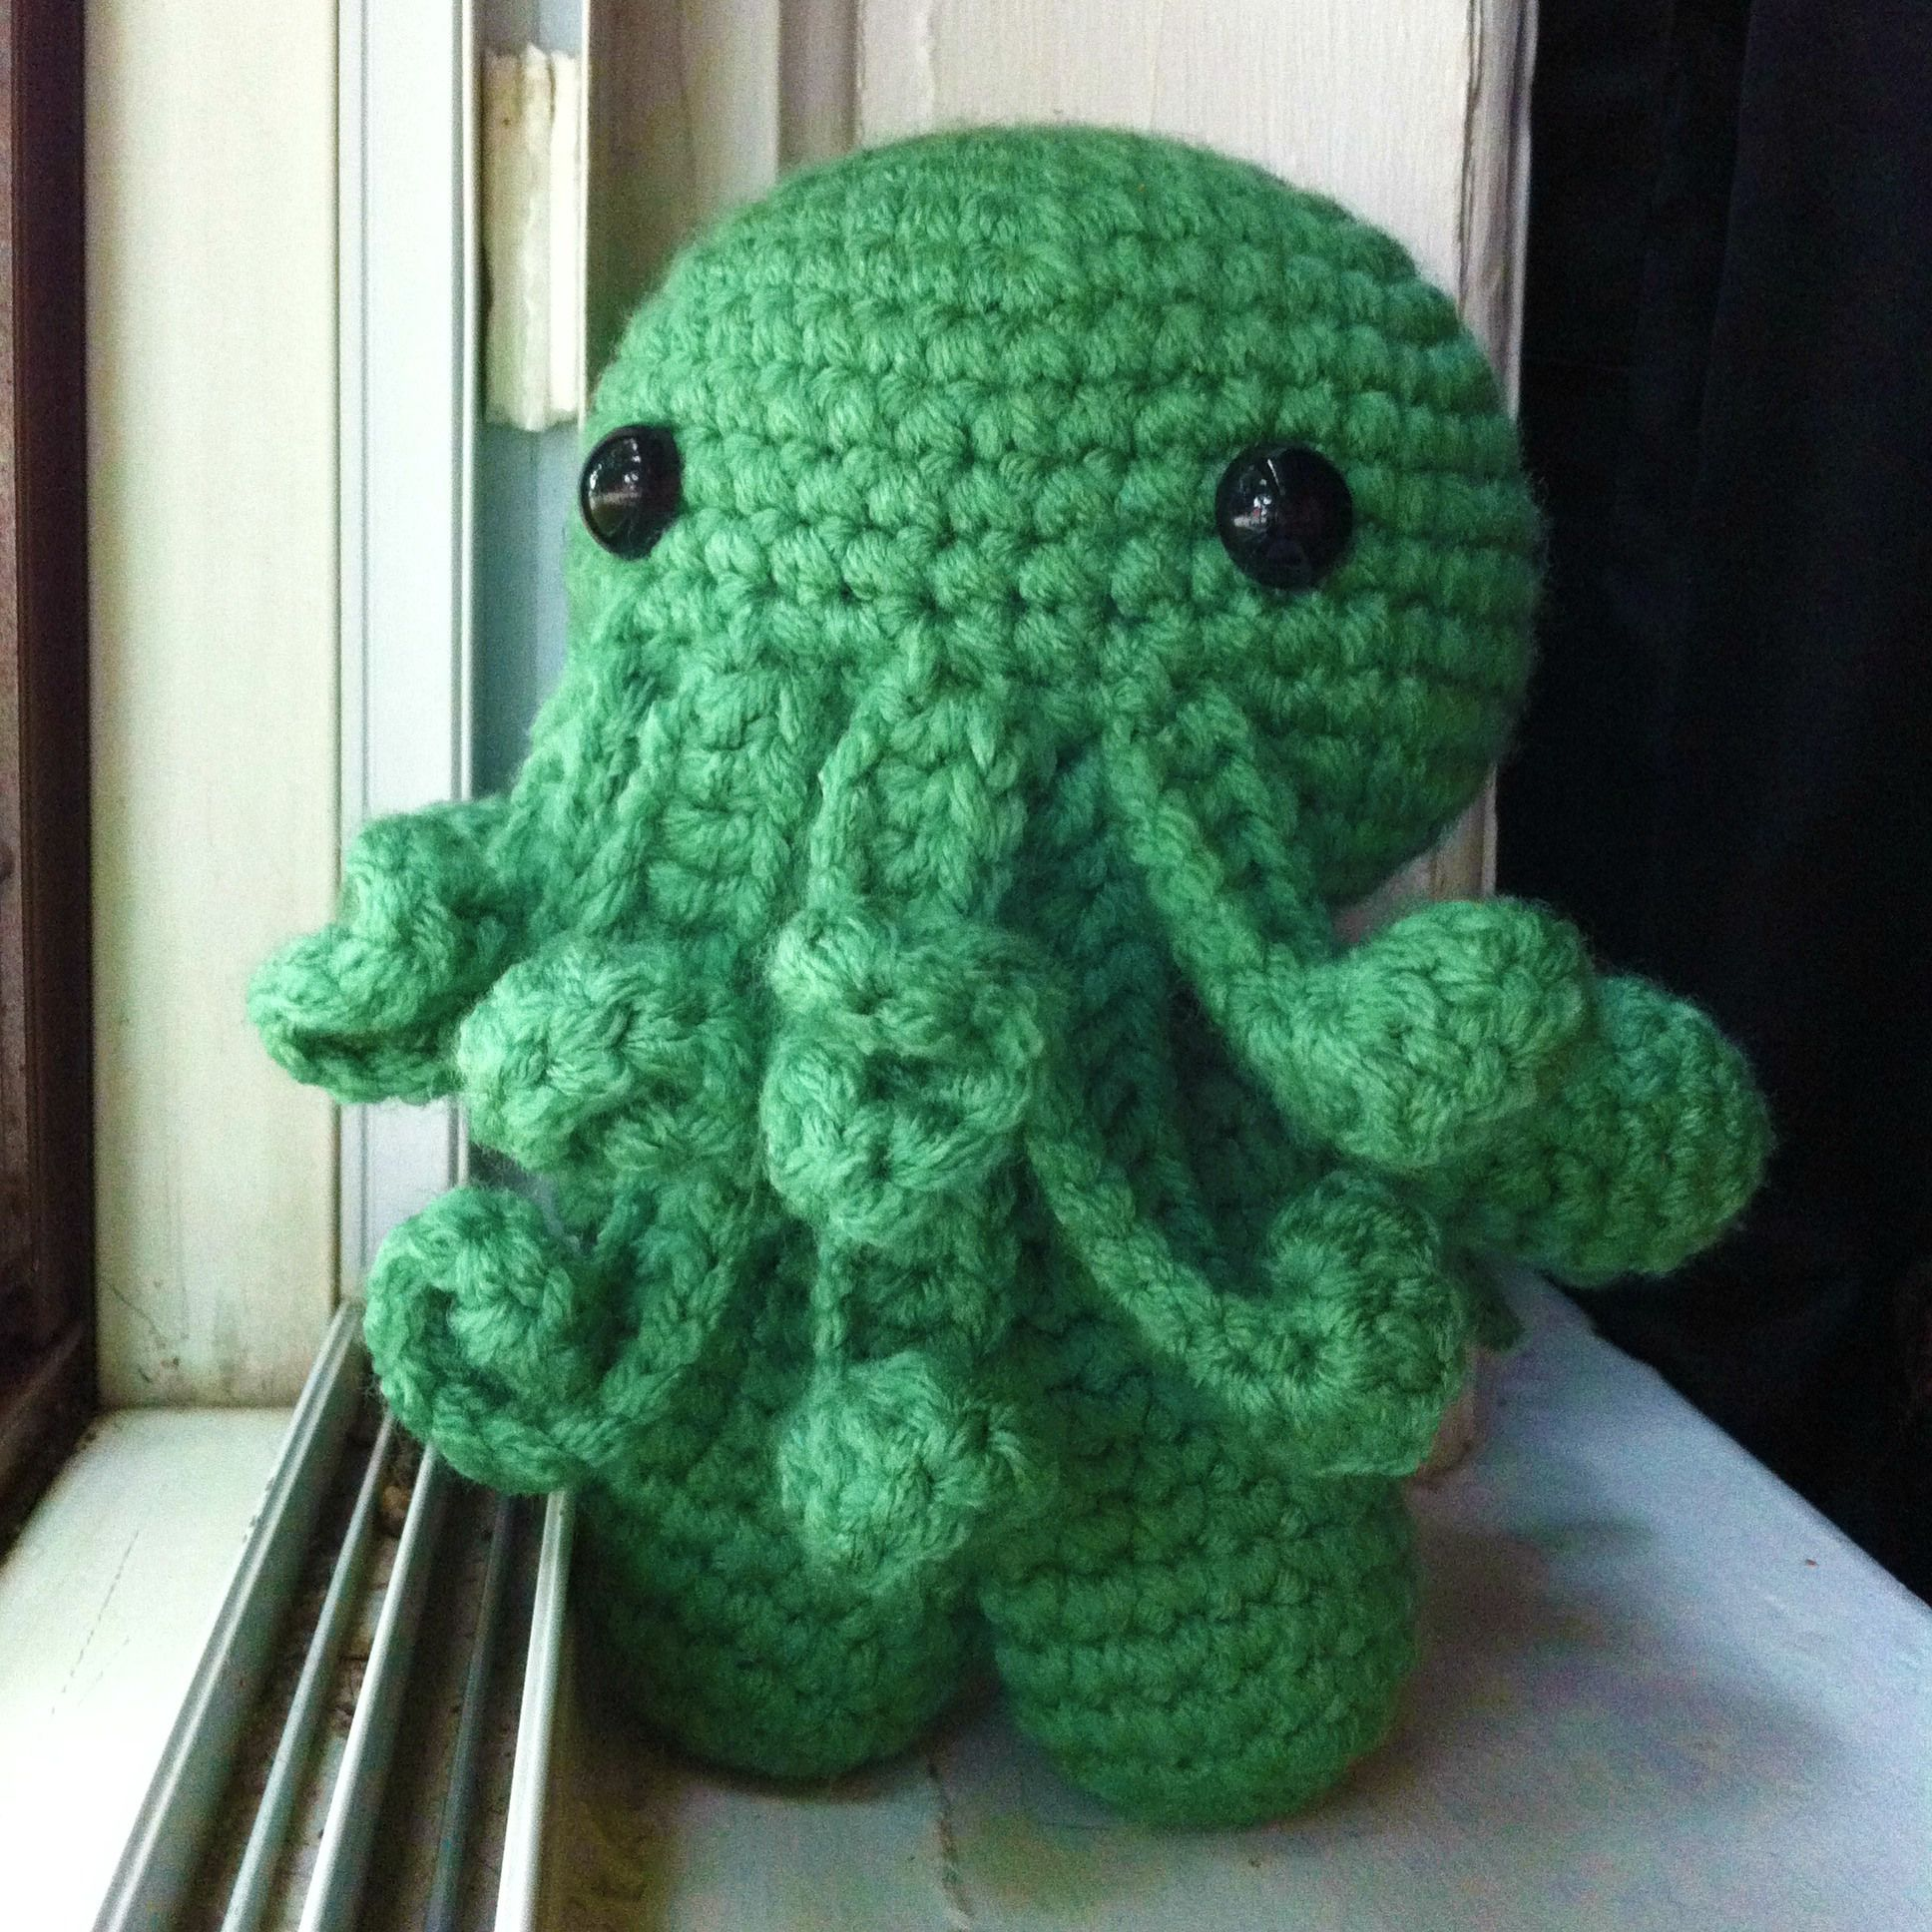 Free pattern friday cthulhu crochet amigurumi and free pattern free pattern friday cthulhu bankloansurffo Choice Image